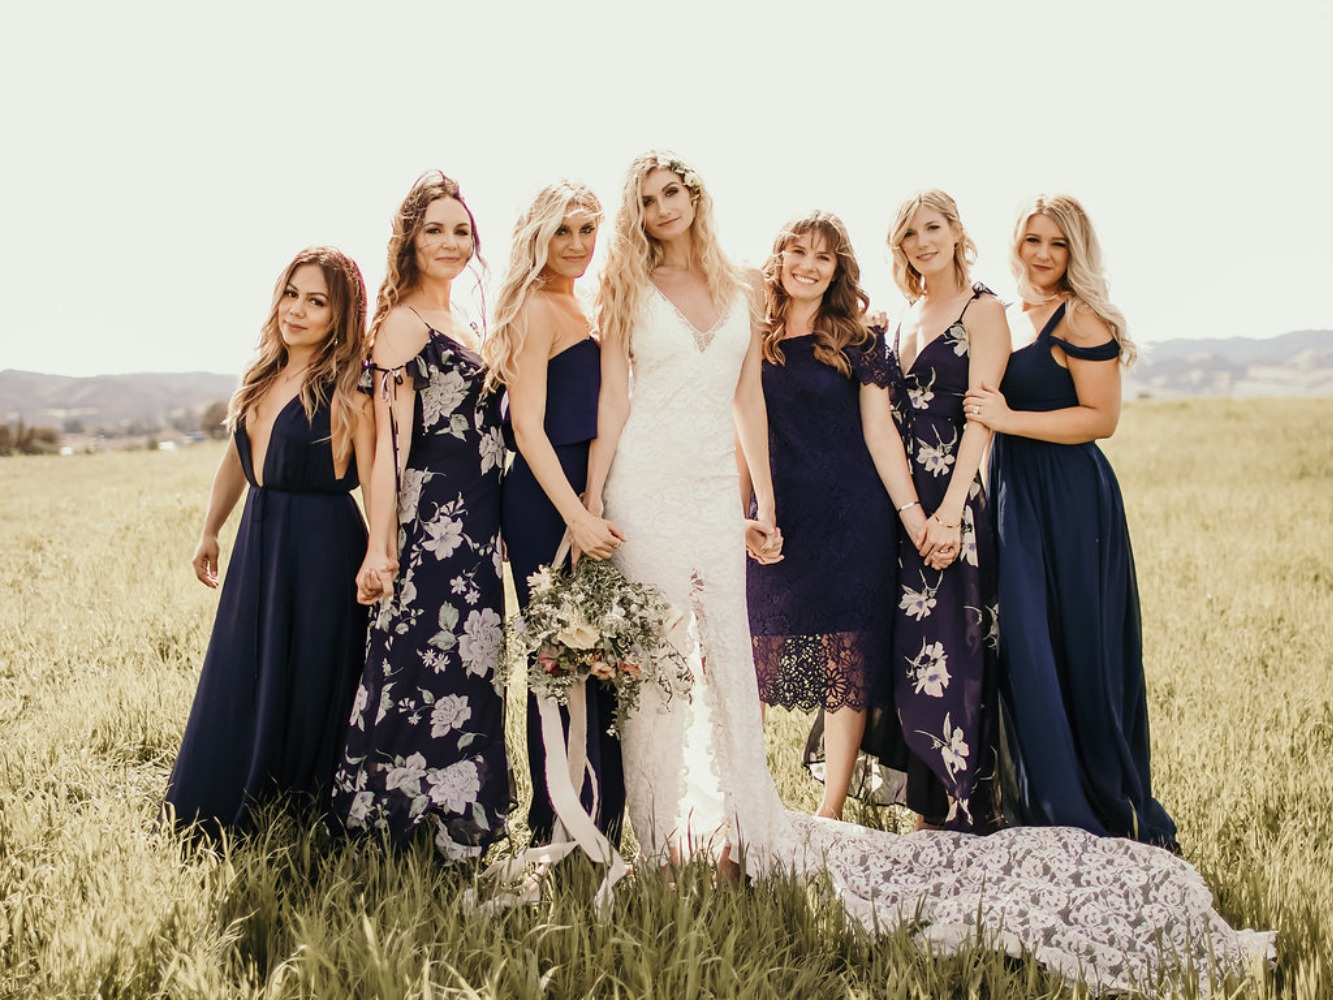 the bride and her bridesmaids in mismatched navy